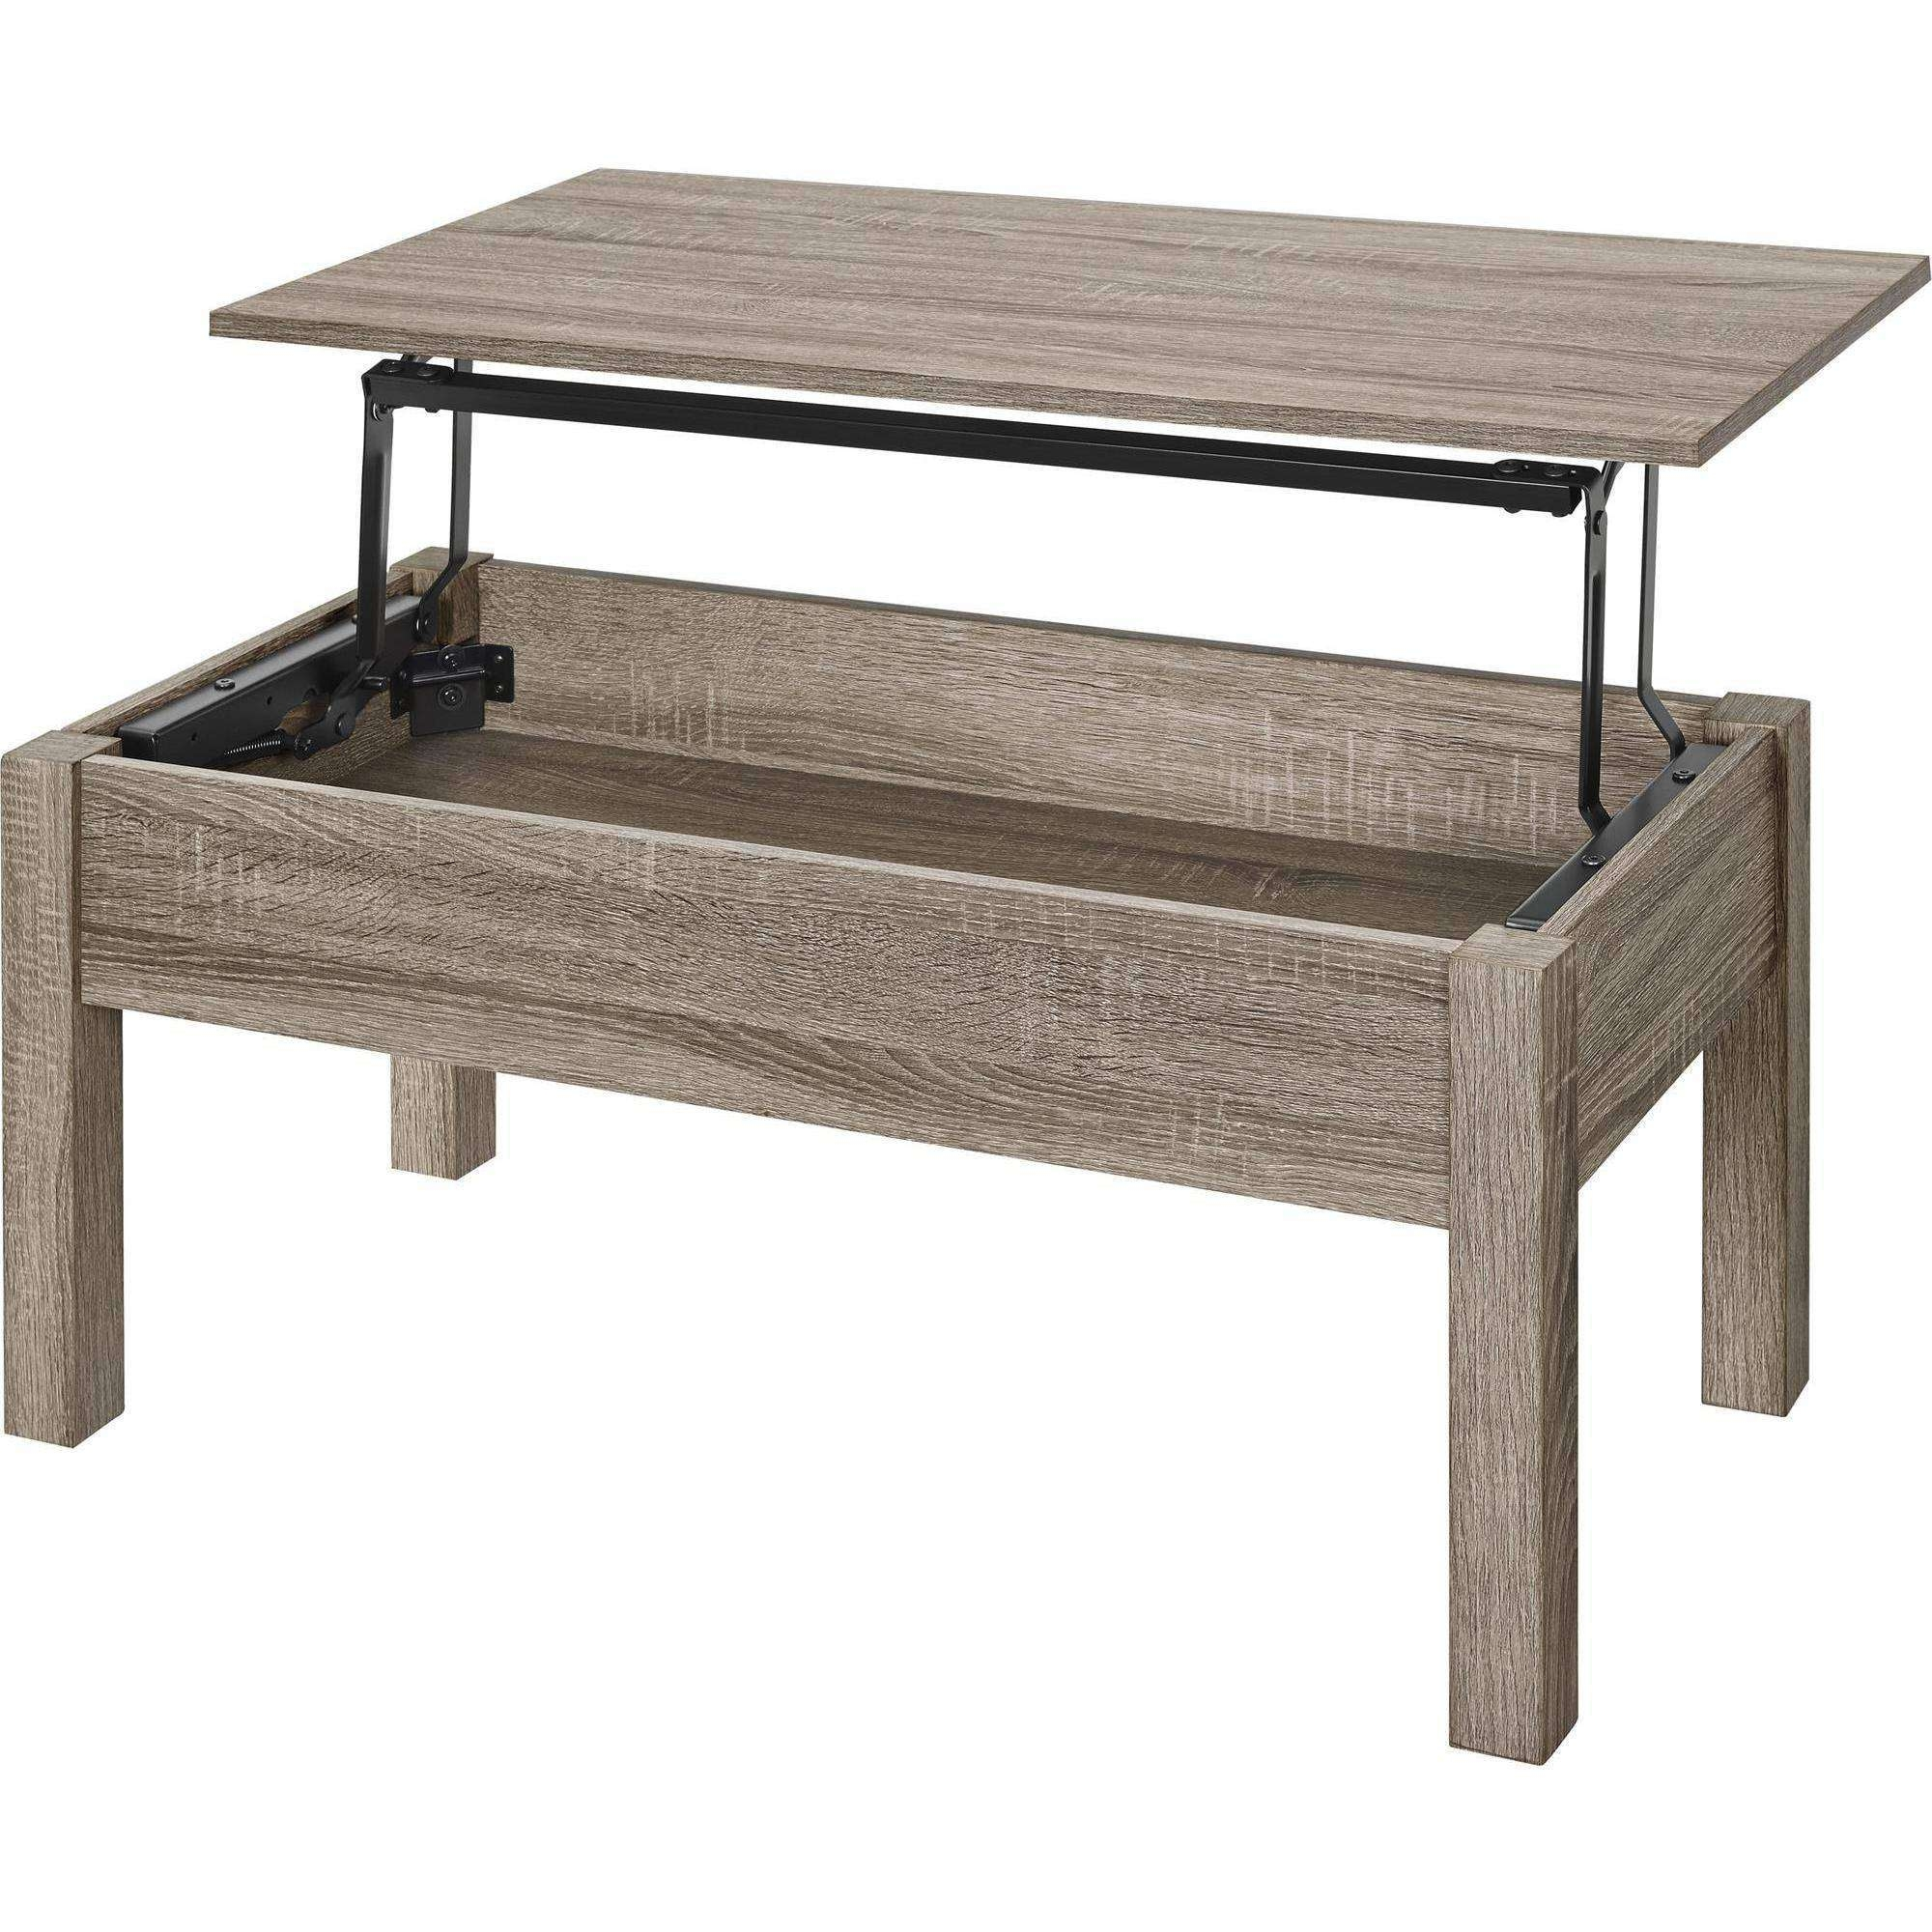 Coffee Table : Amish Lift Top Coffee Table Ikea Coffee Table Lack Regarding  Latest Coffee Tables